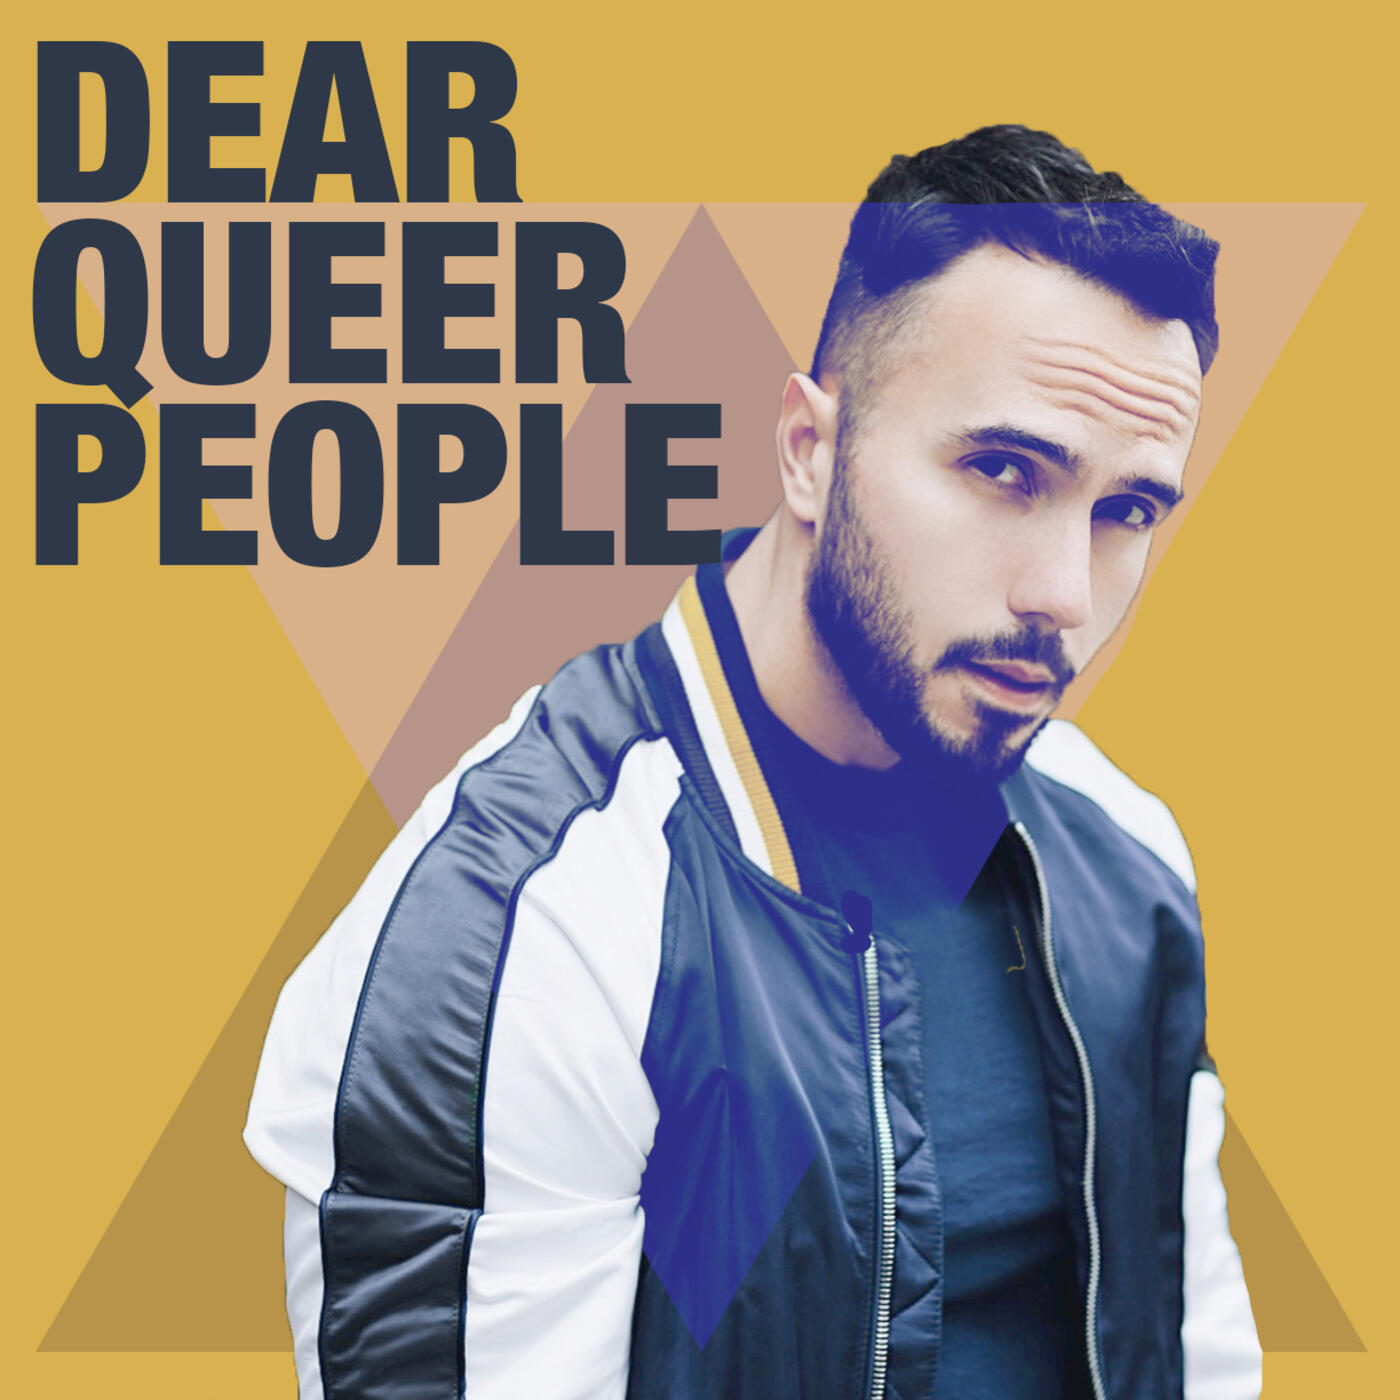 Dear Queer People thumbnail